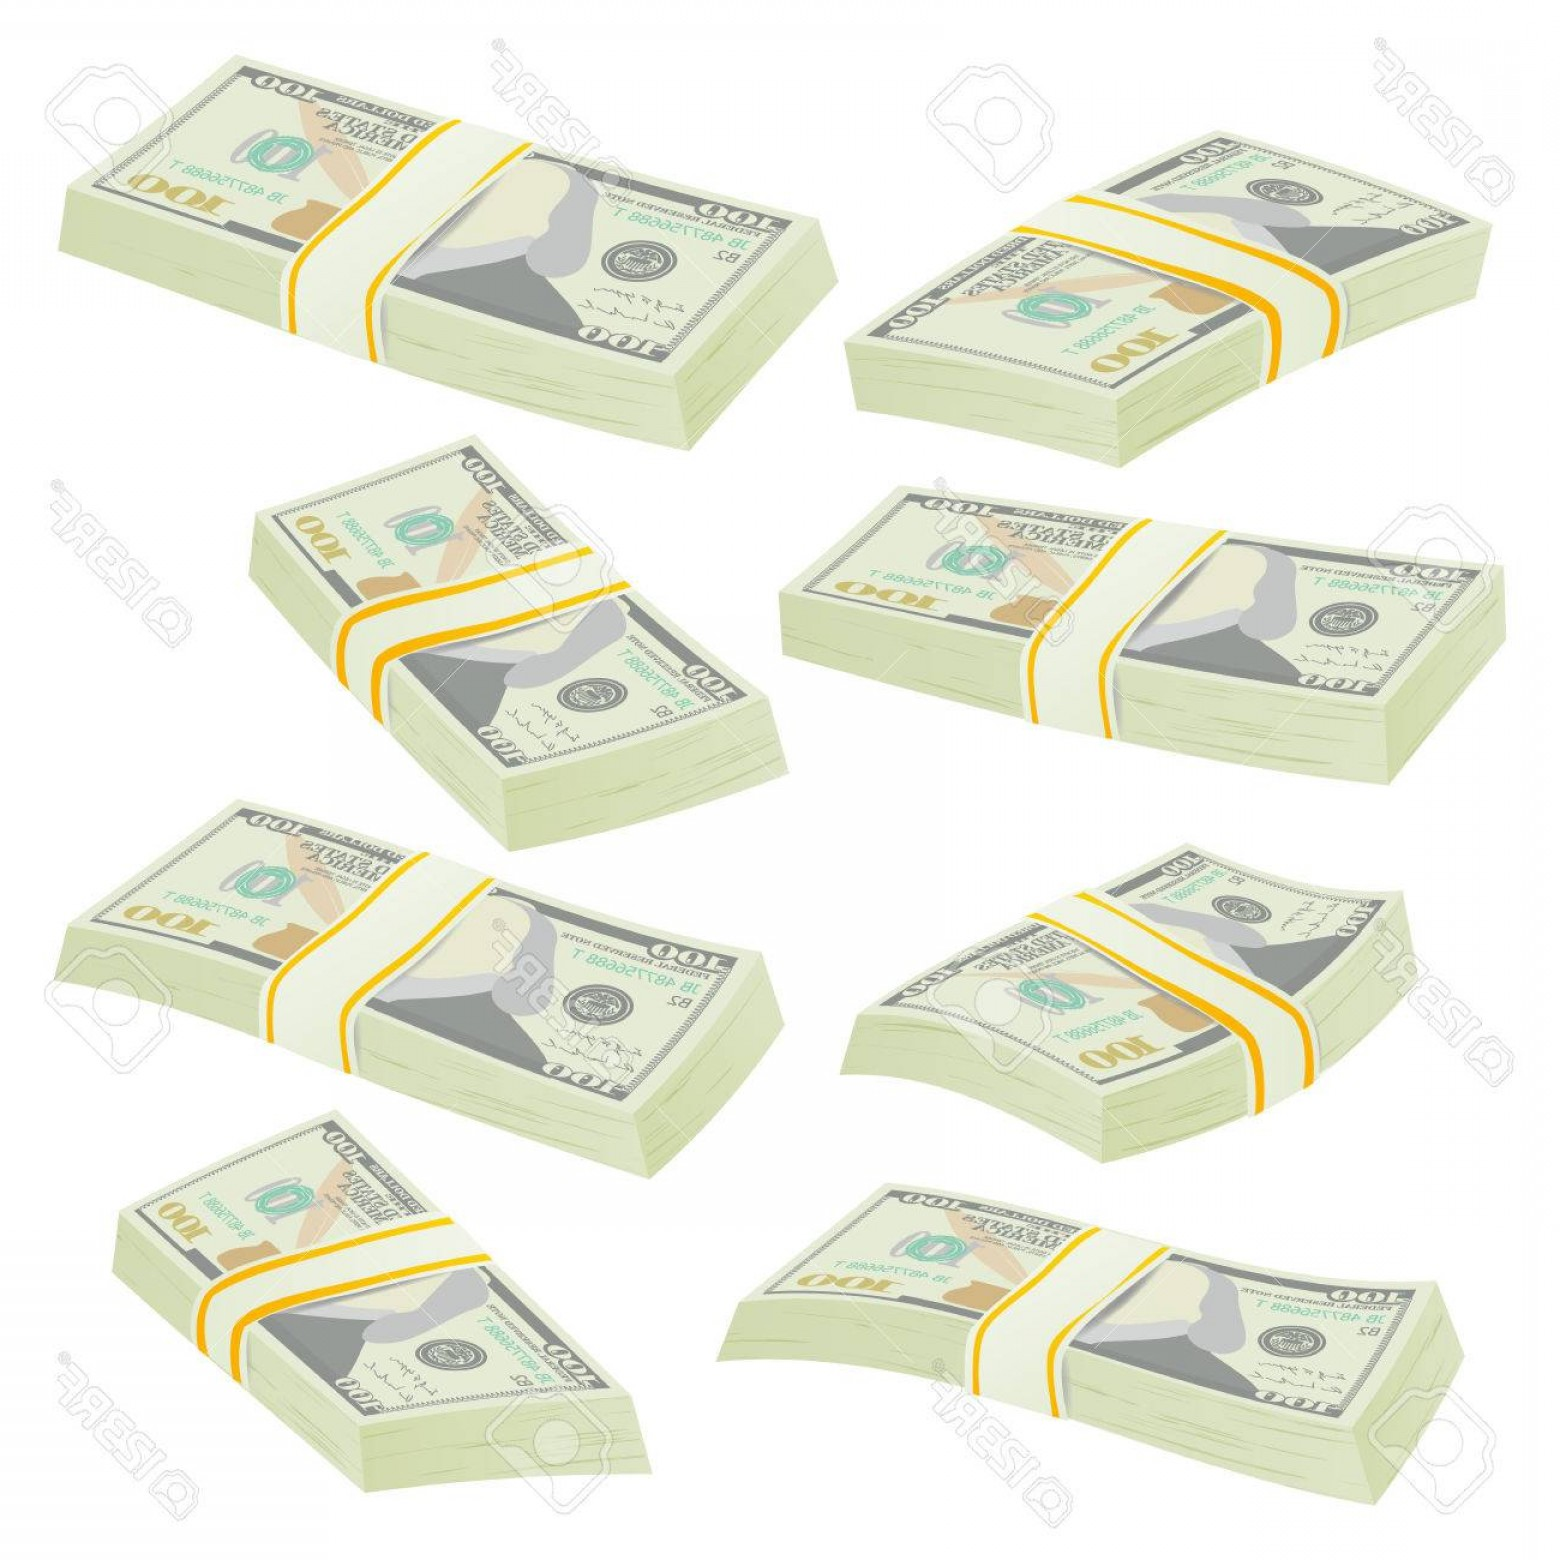 Hundreds Of Money Stacks Vector: Photostock Vector Money Stacks Vector Realistic Concept D Dollar Banknotes Cash Symbol Money Bill Isolated Illustrati